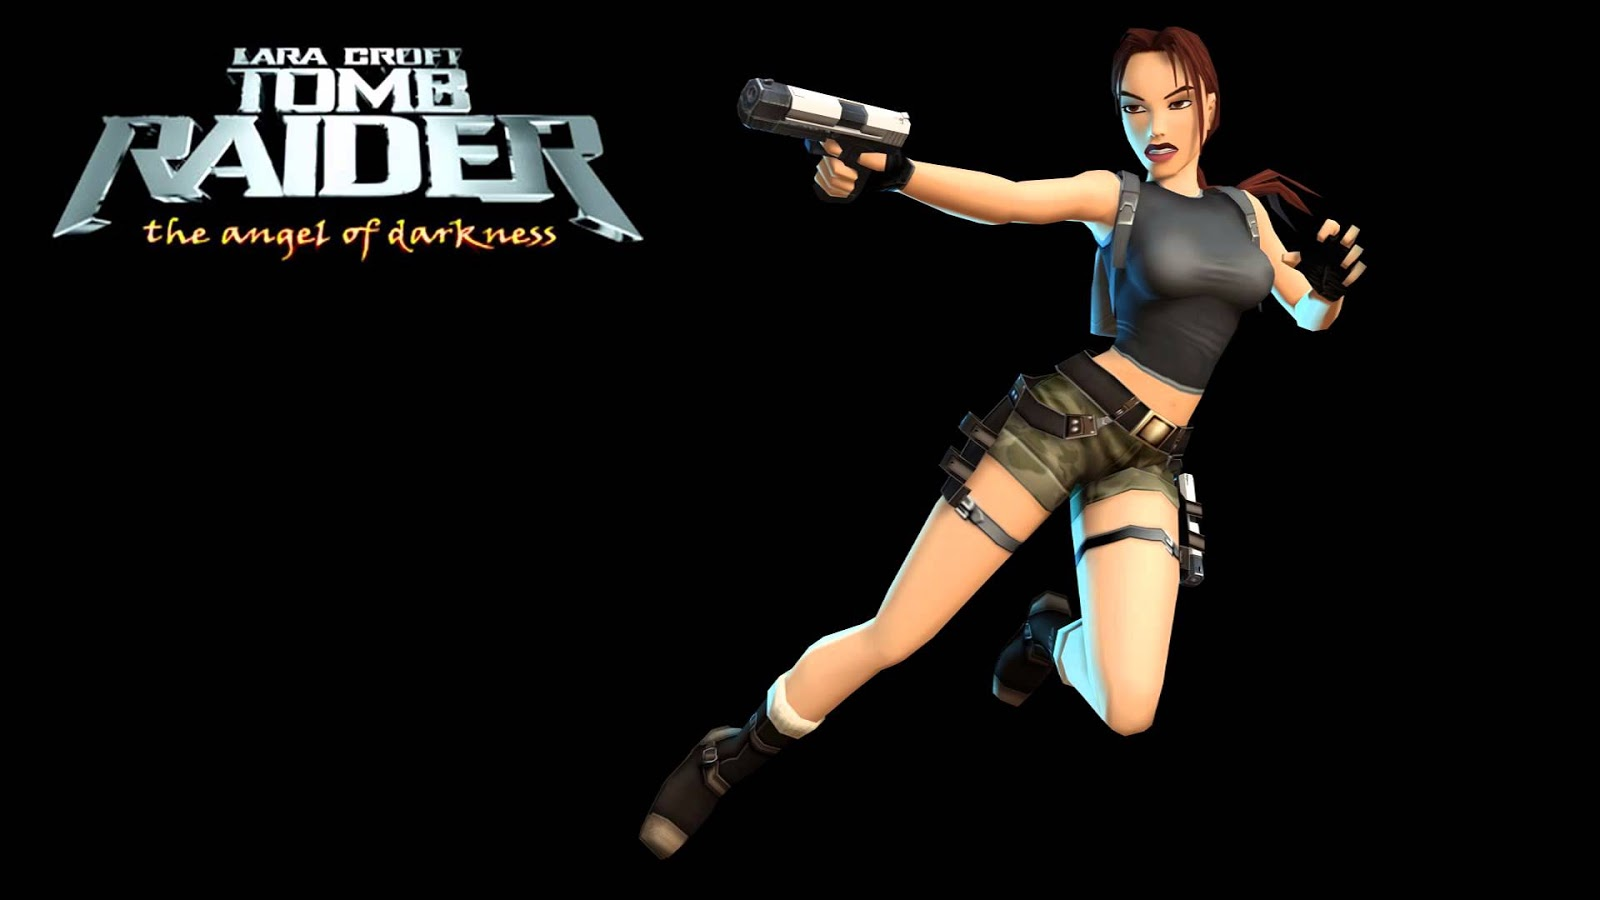 Tomb raider angel of darkness nude patch nude download